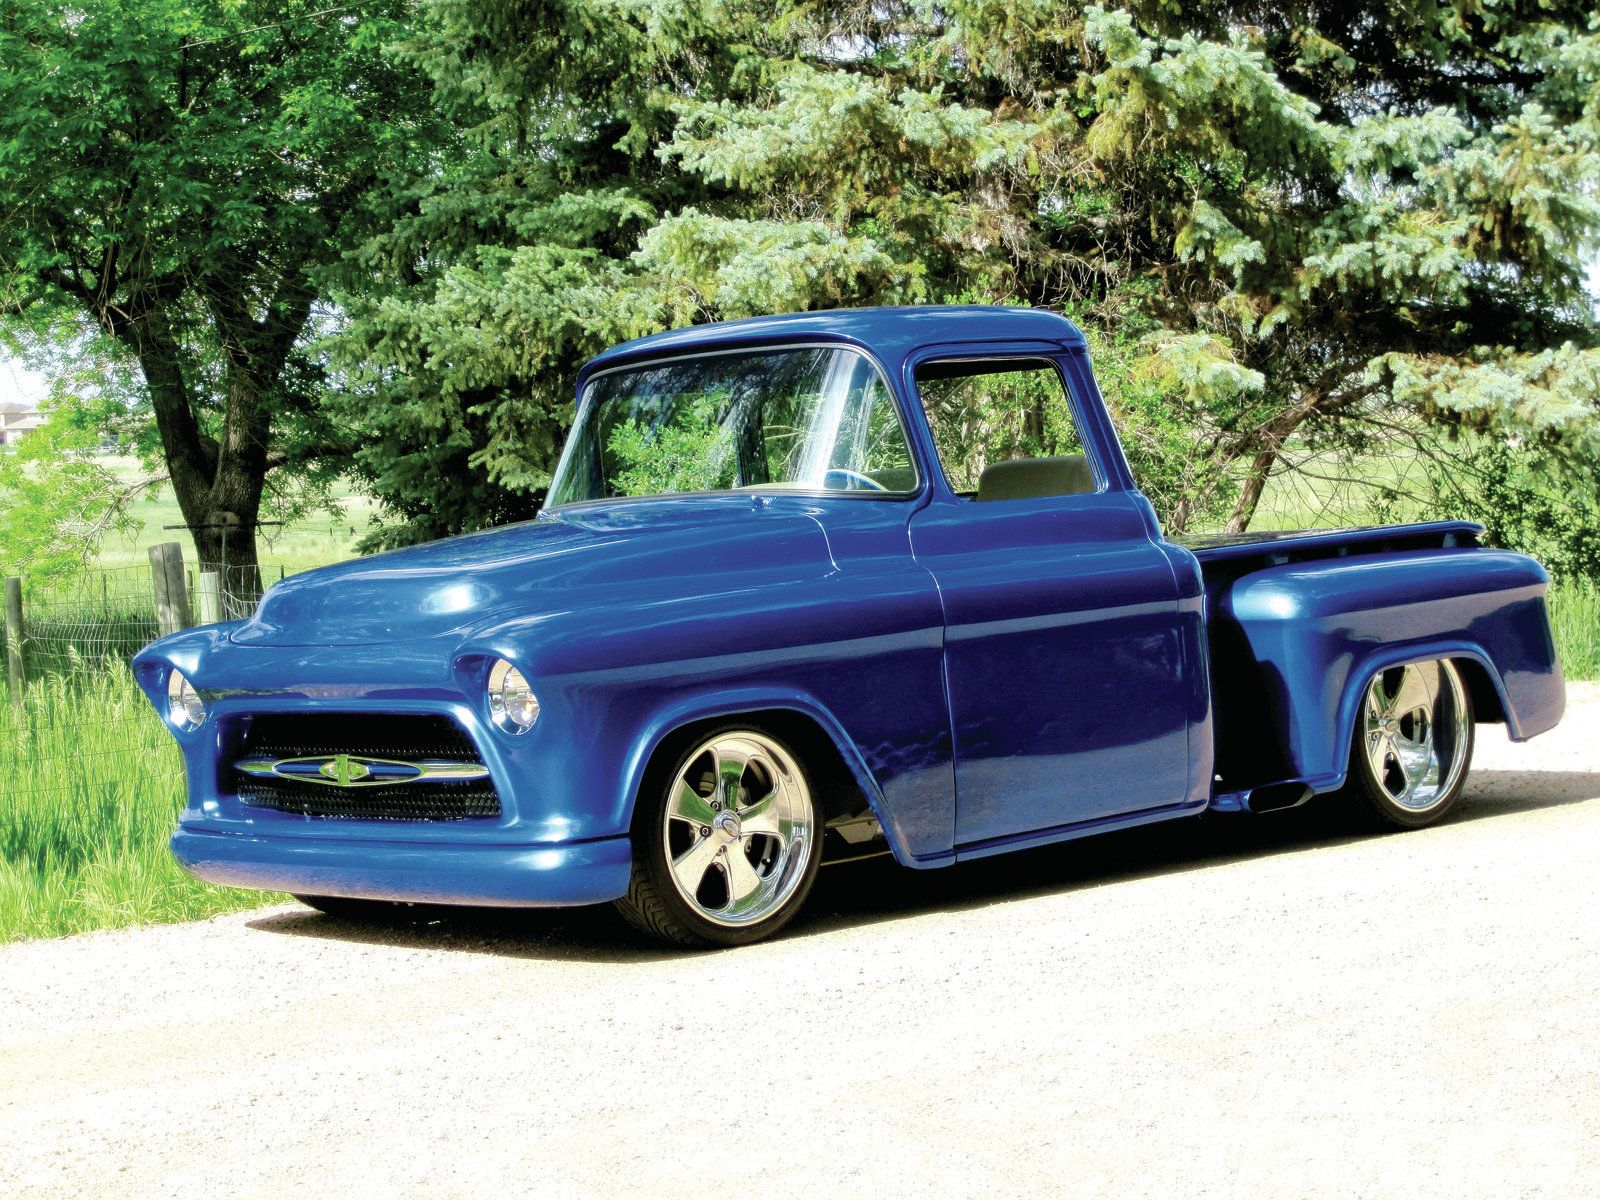 1955 chevrolet pro street truck youtube - Chevrolet Custom Pick Up Truck